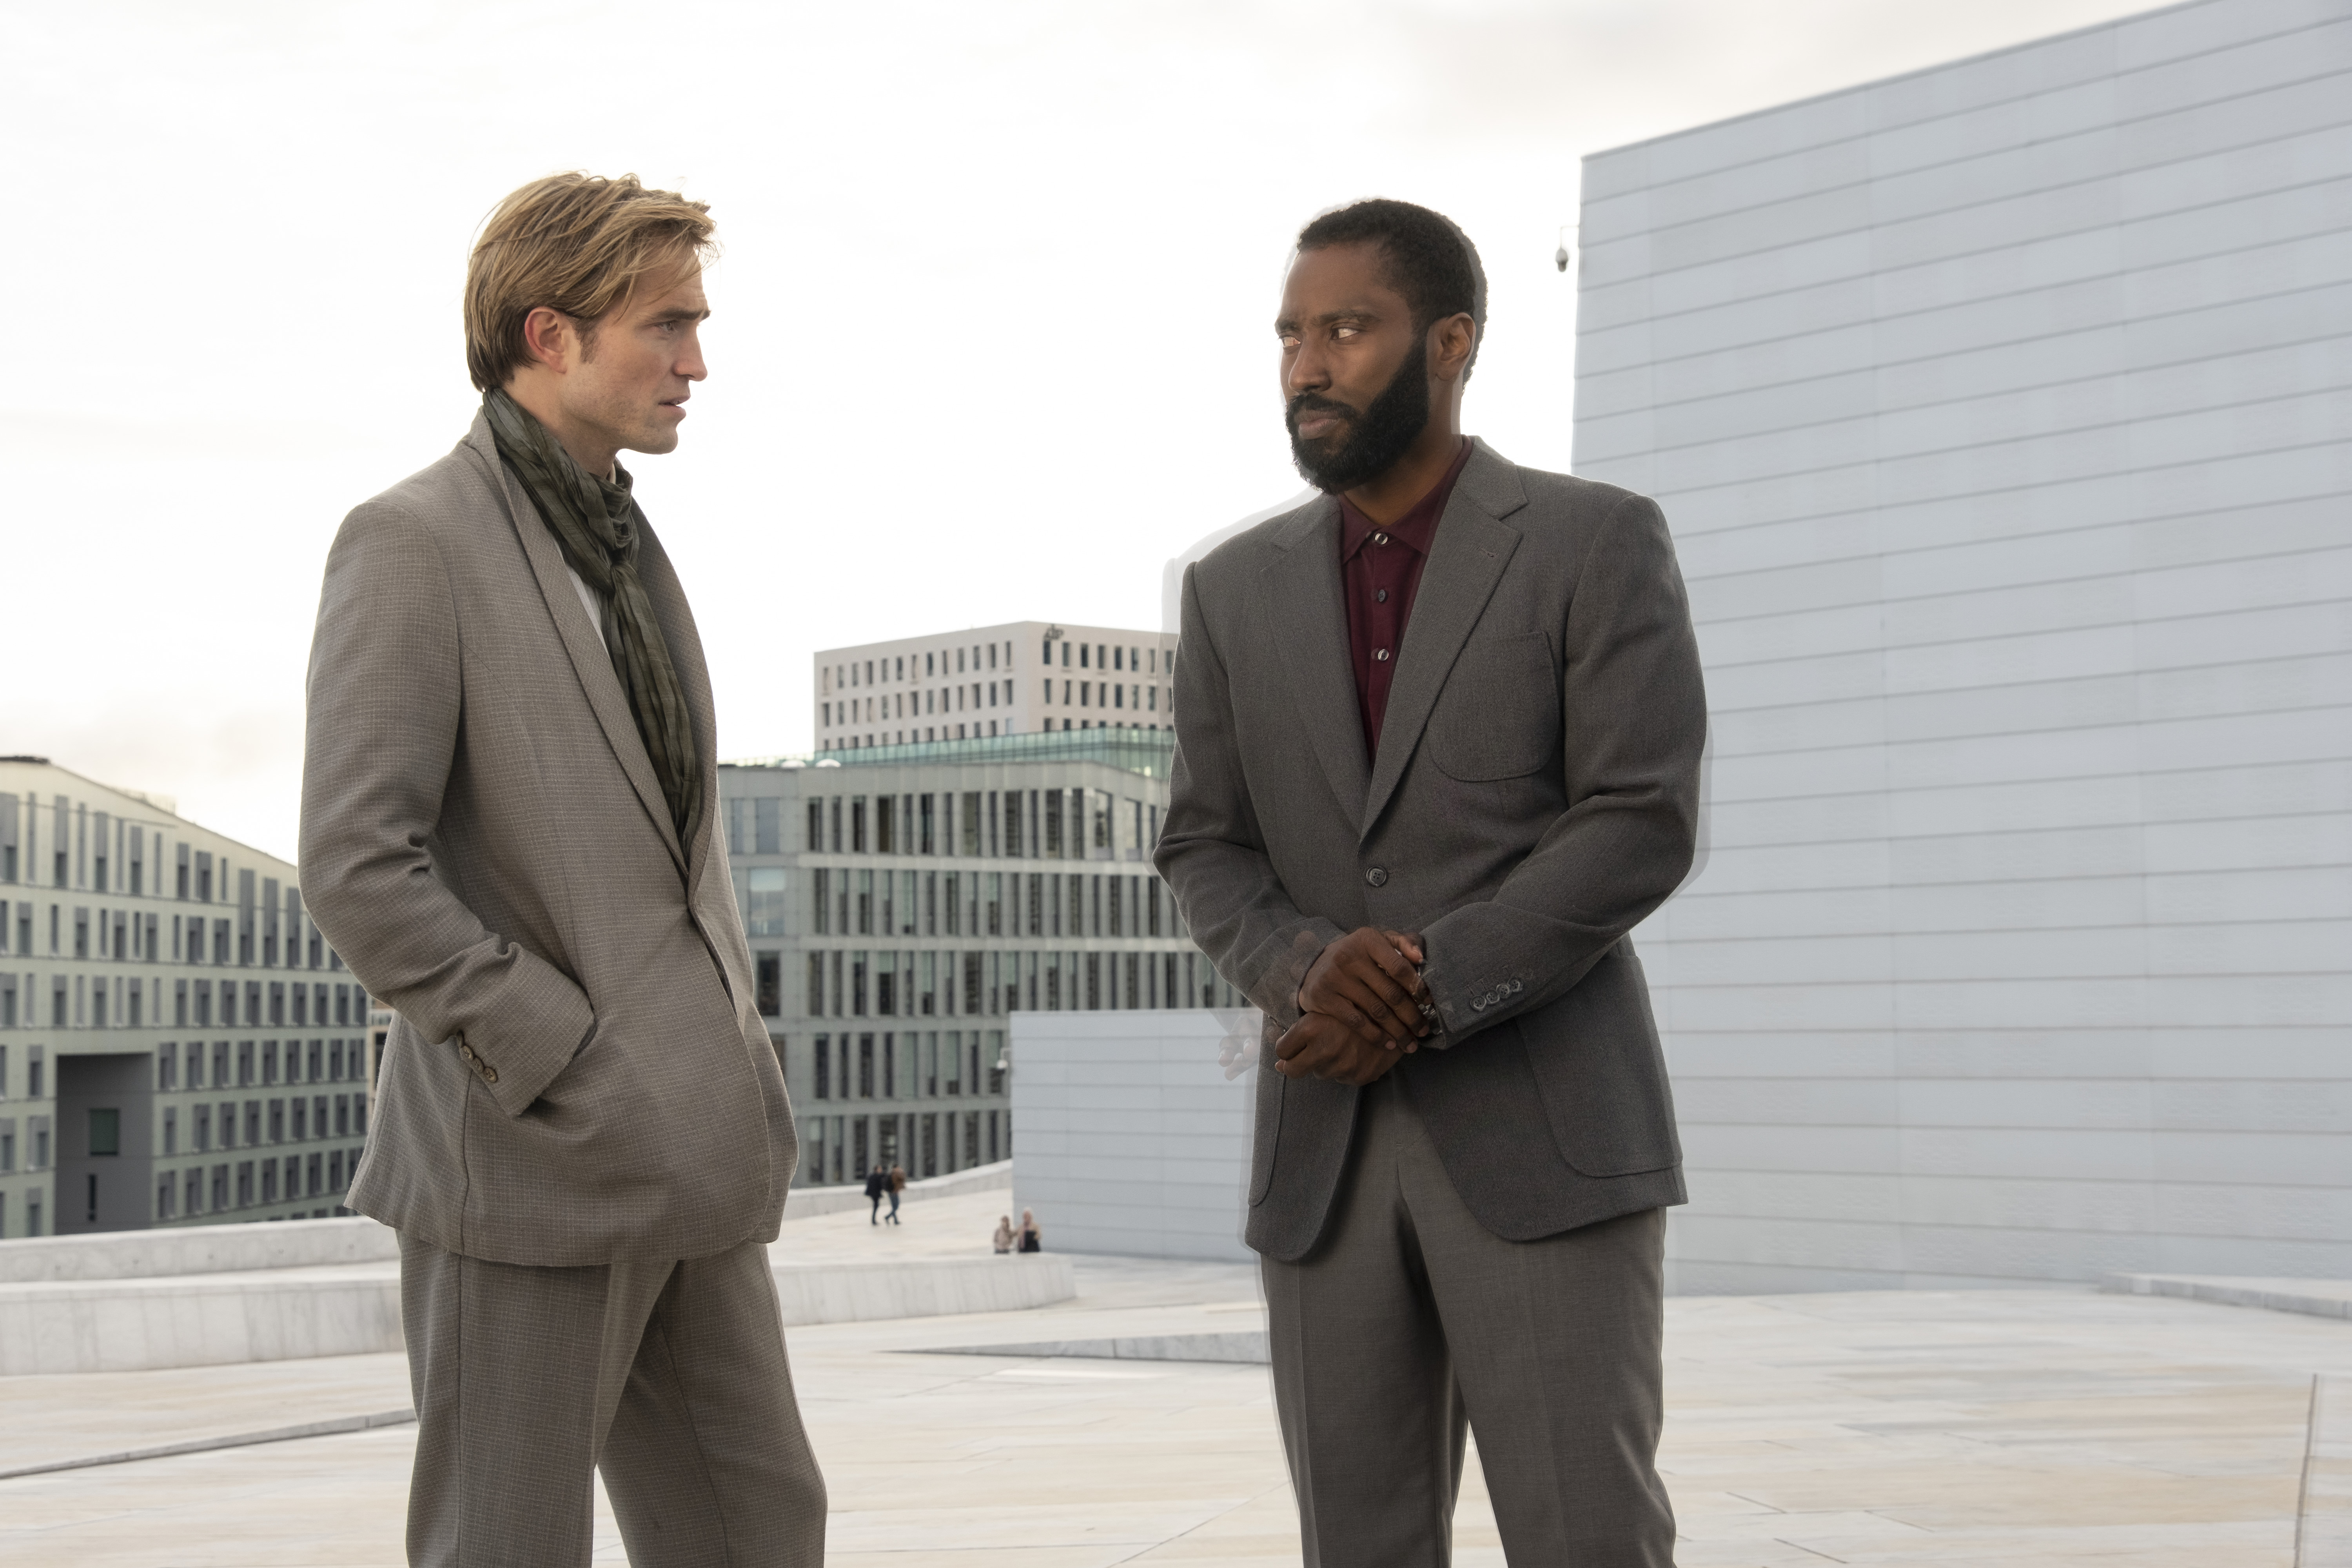 """L-r) ROBERT PATTINSON and JOHN DAVID WASHINGTON in Warner Bros. Pictures' action epic """"TENET,"""" a Warner Bros. Pictures release."""